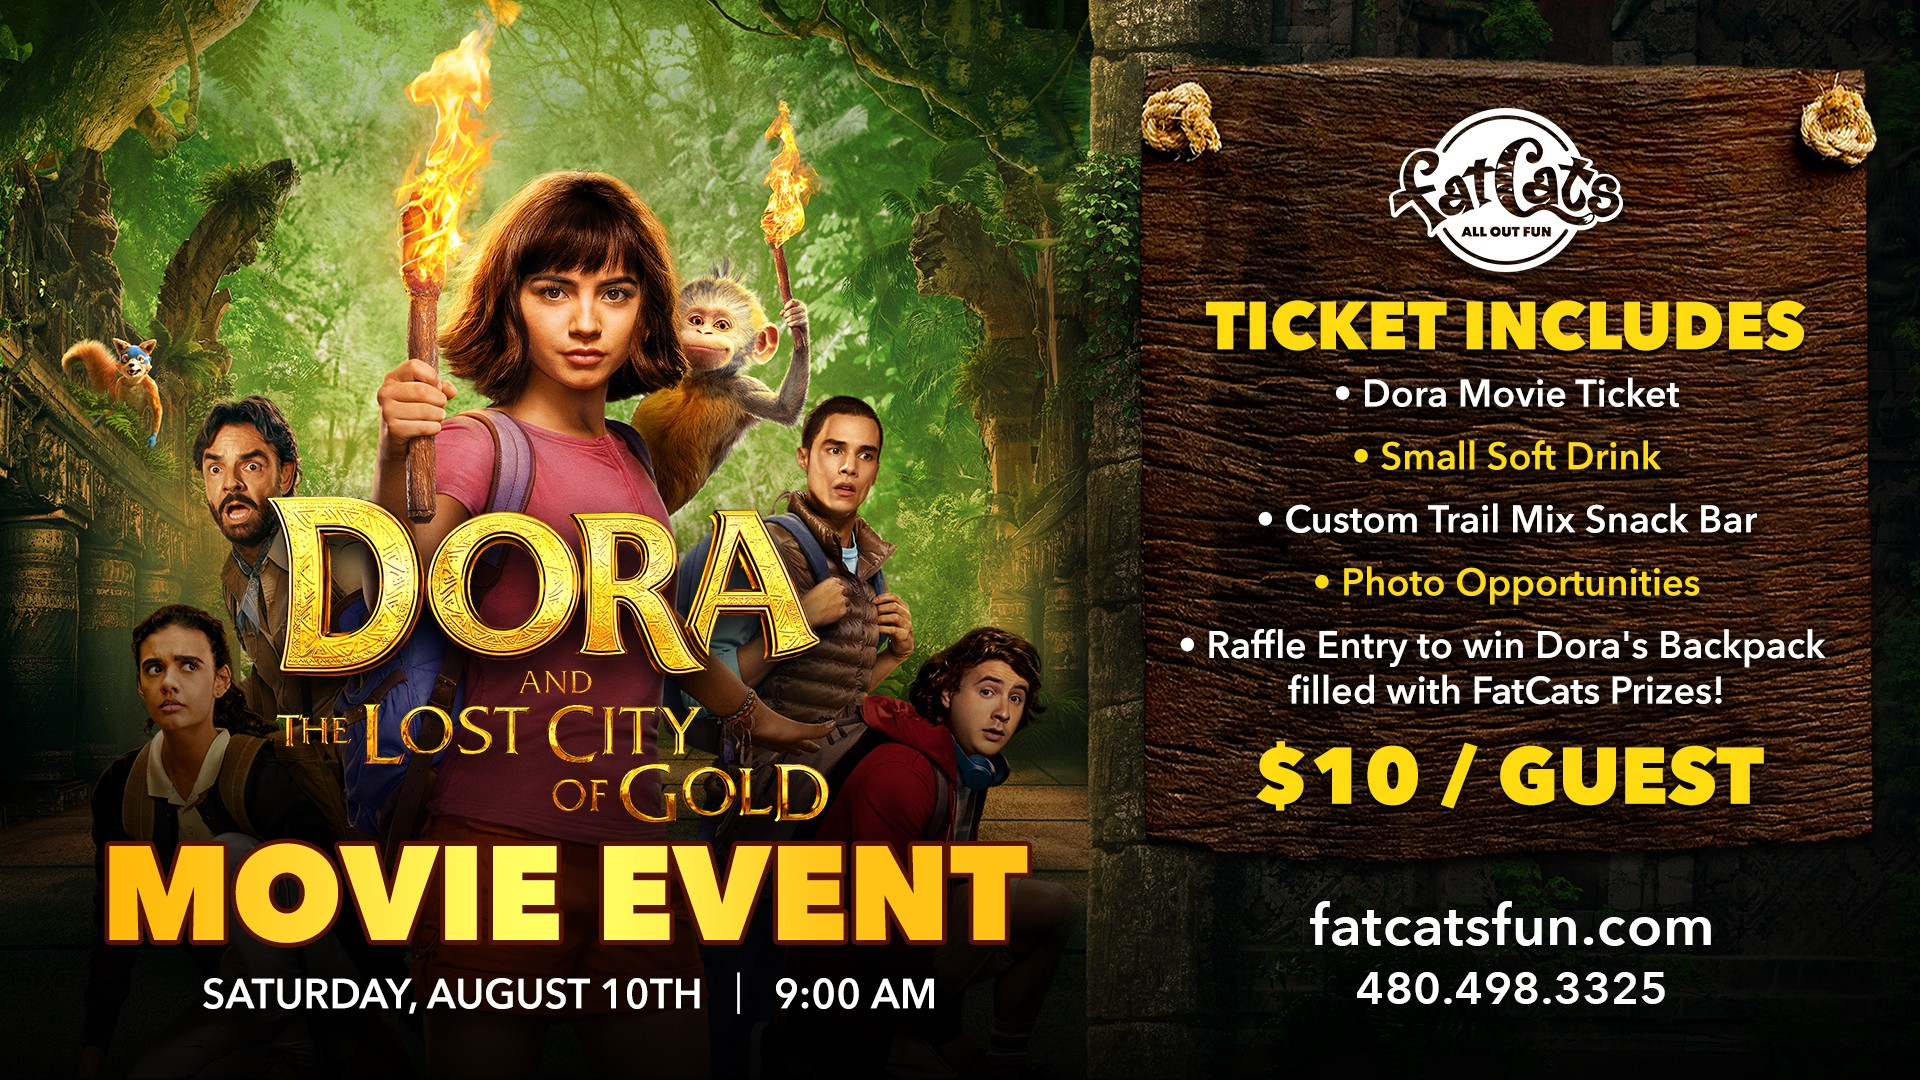 Dora Lost City of Gold Movie Event Poster